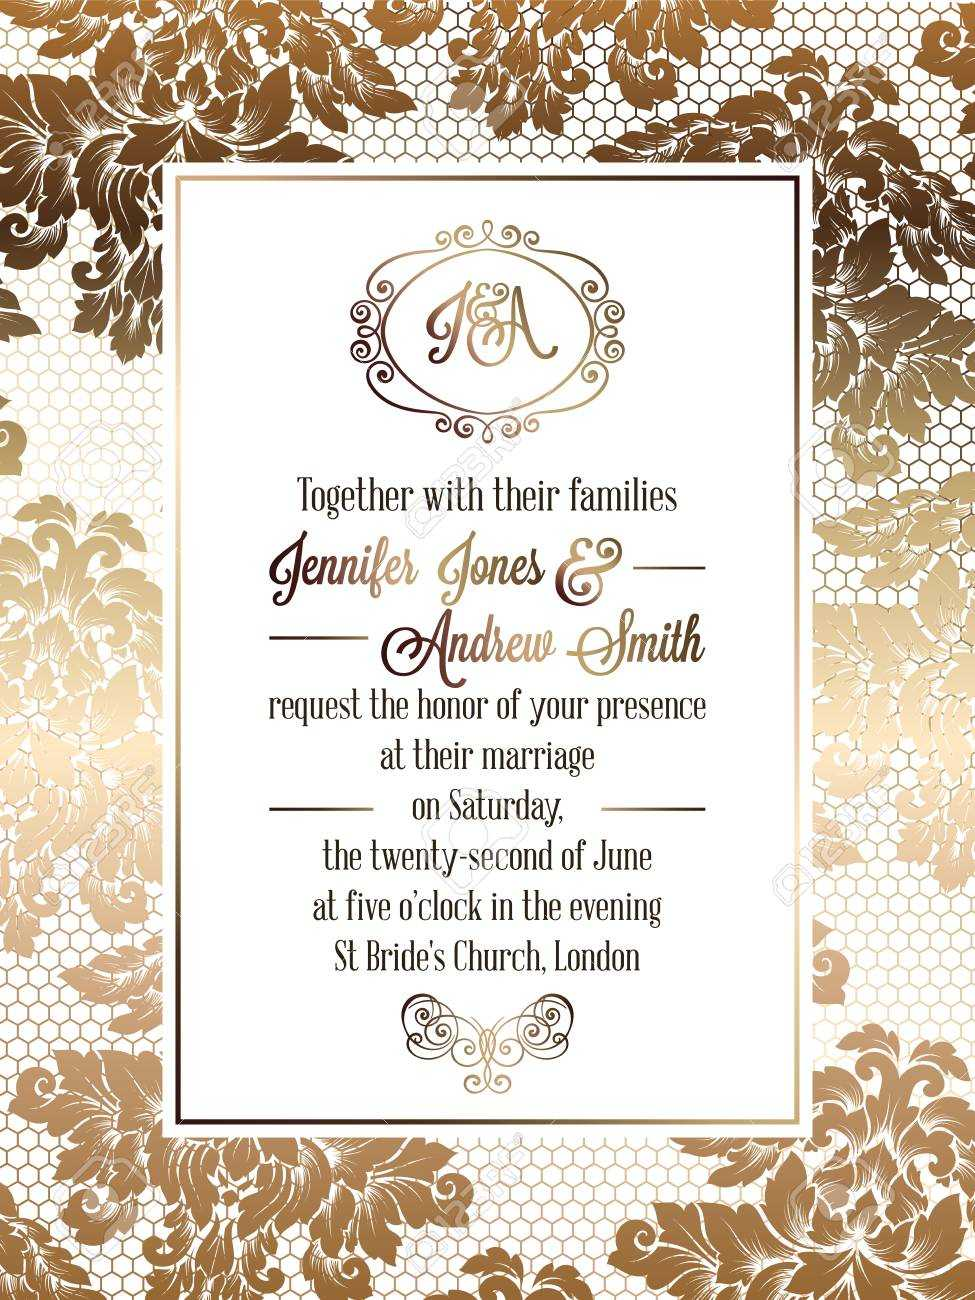 Vintage Baroque Style Wedding Invitation Card Template.. Elegant.. For Free E Wedding Invitation Card Templates